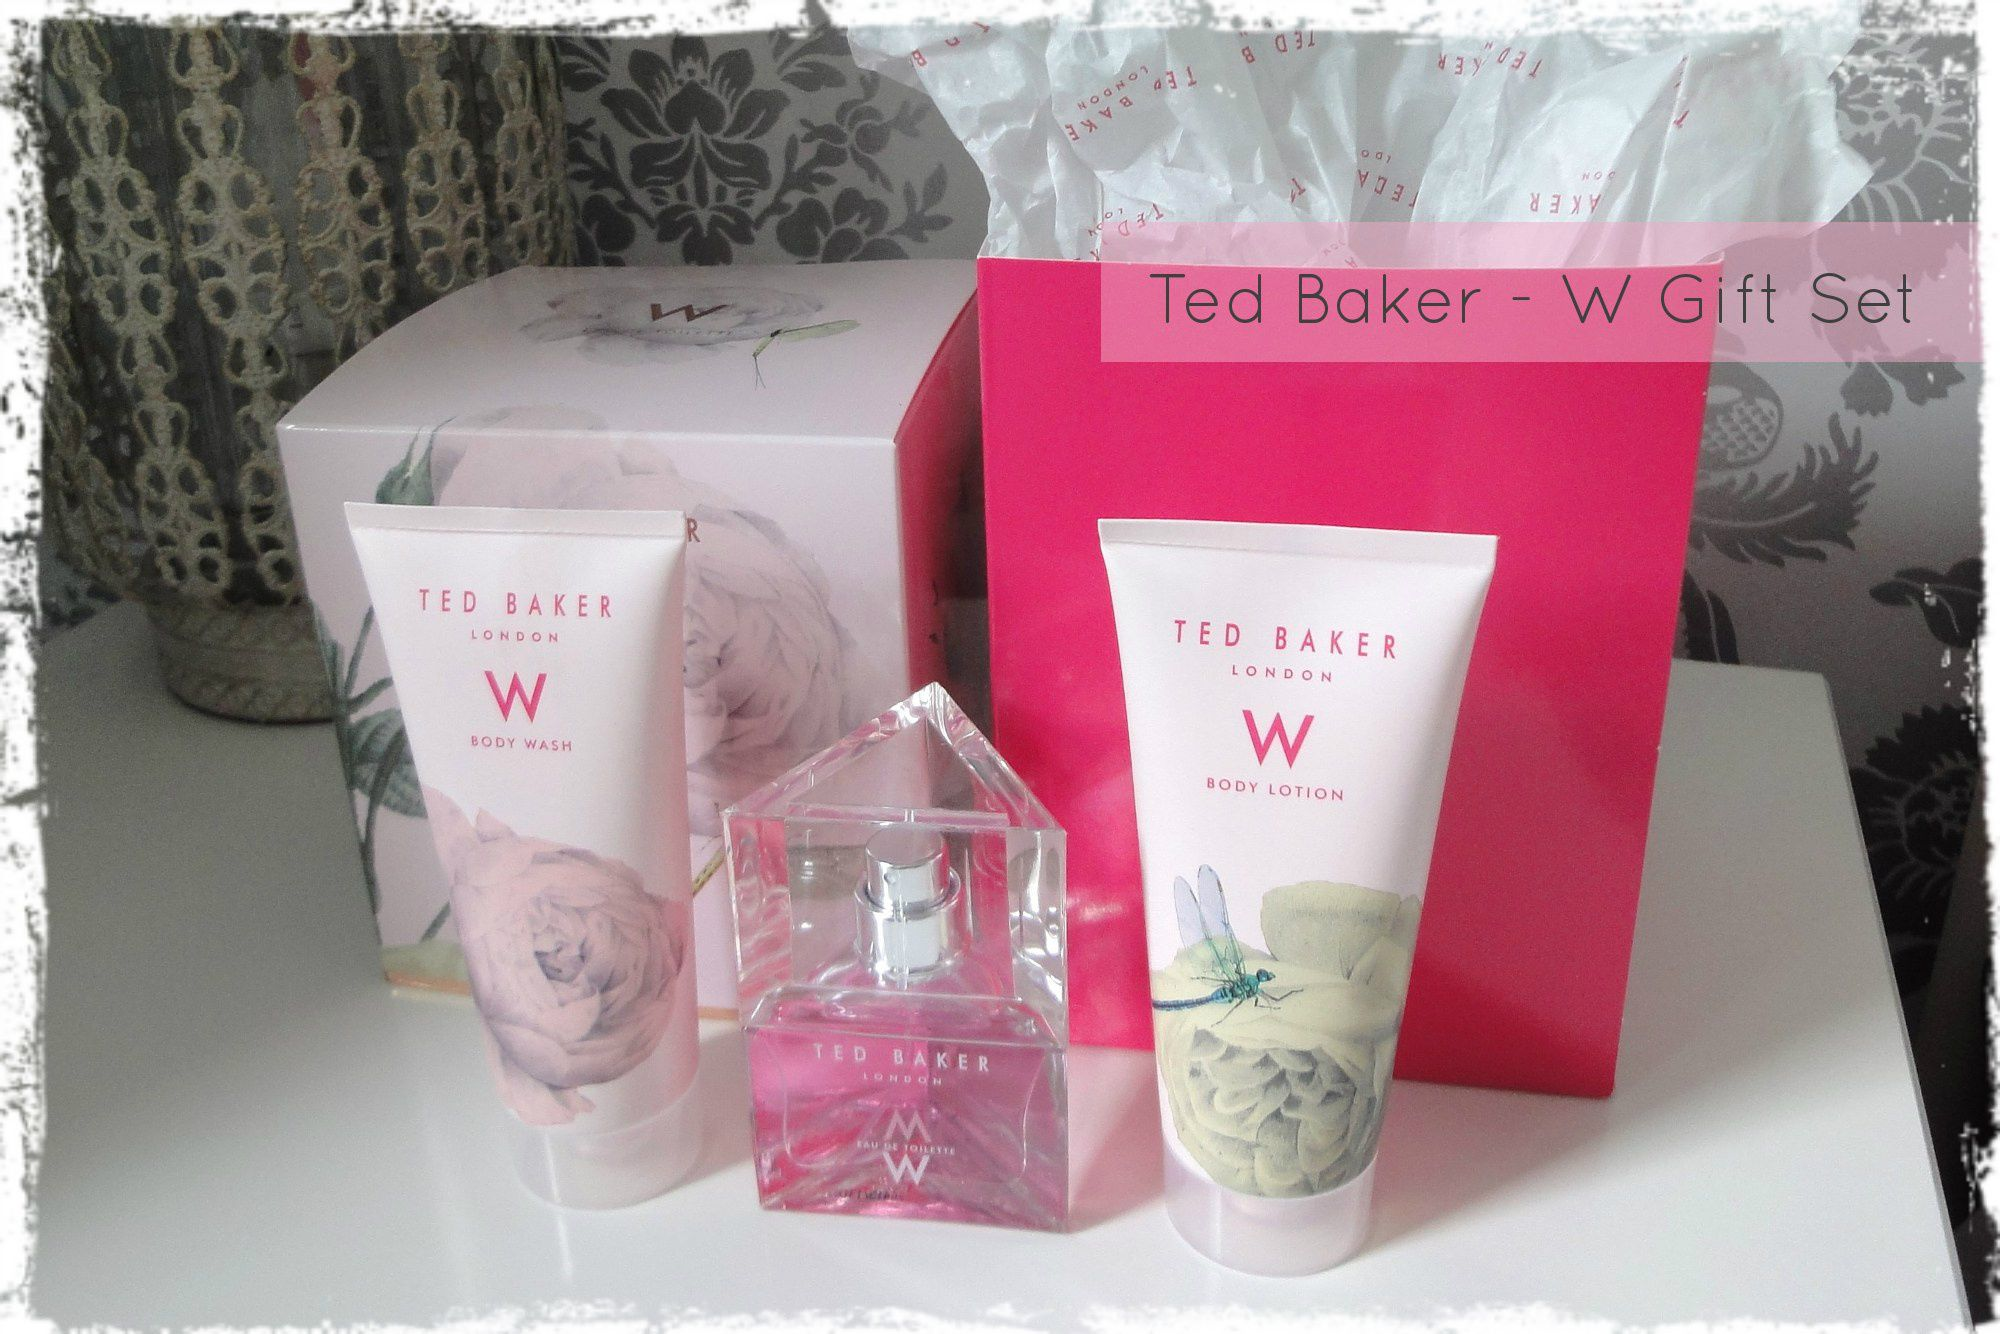 Ted Baker W Gift Set | Ted